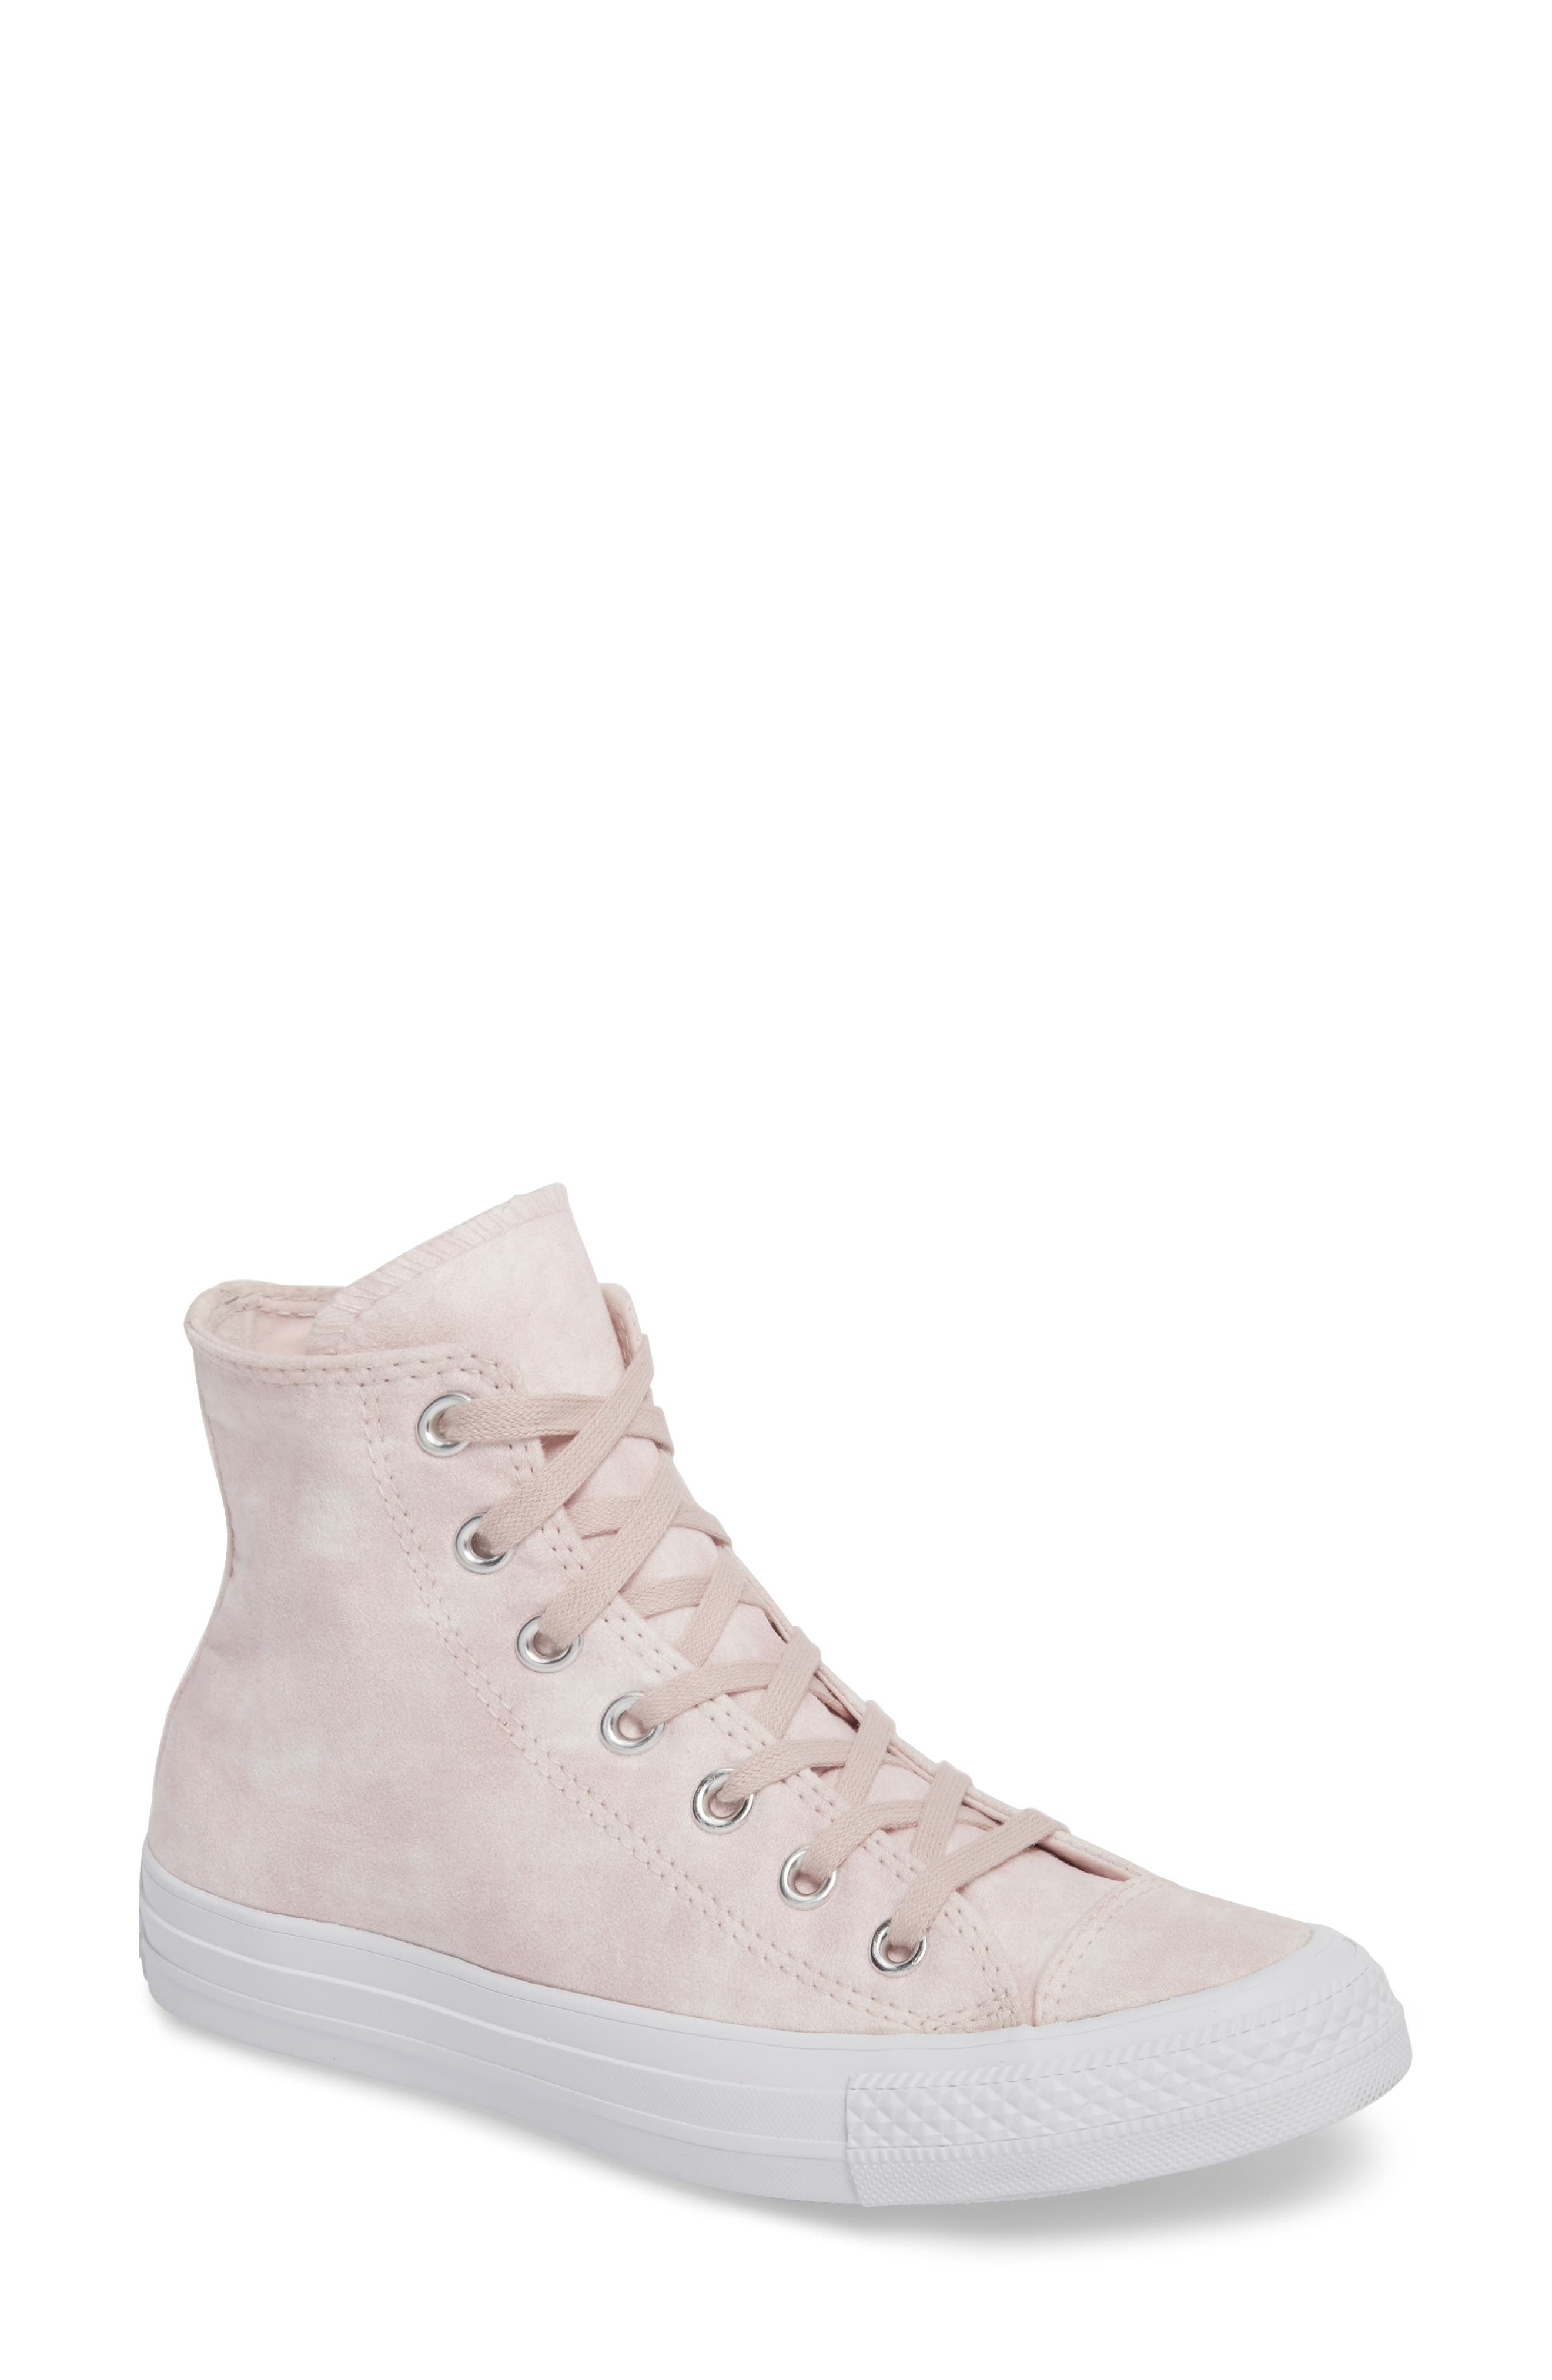 Chuck Taylor<sup>®</sup> All Star<sup>®</sup> Peached High Top Sneaker,                         Main,                         color, Barely Rose